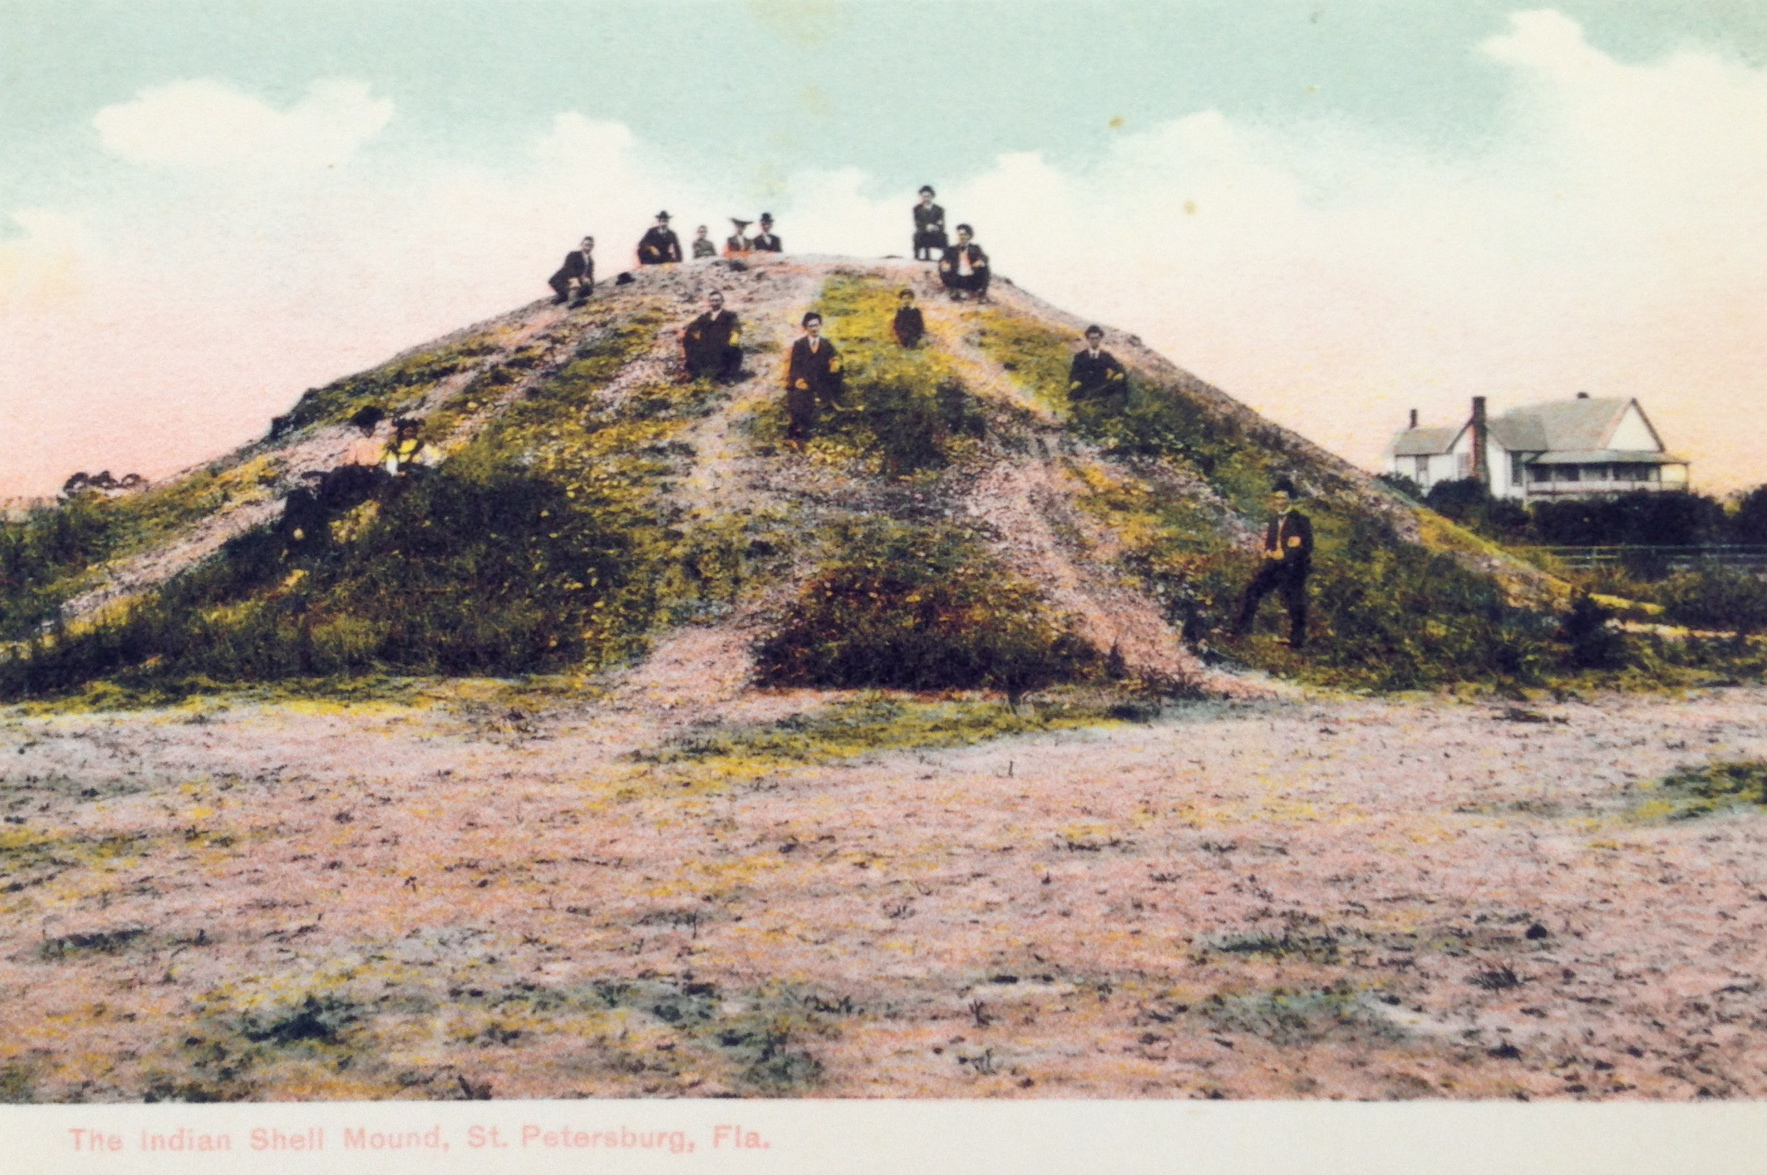 This shell mound or midden was located in the St. Petersburg area where several mounds exist today.